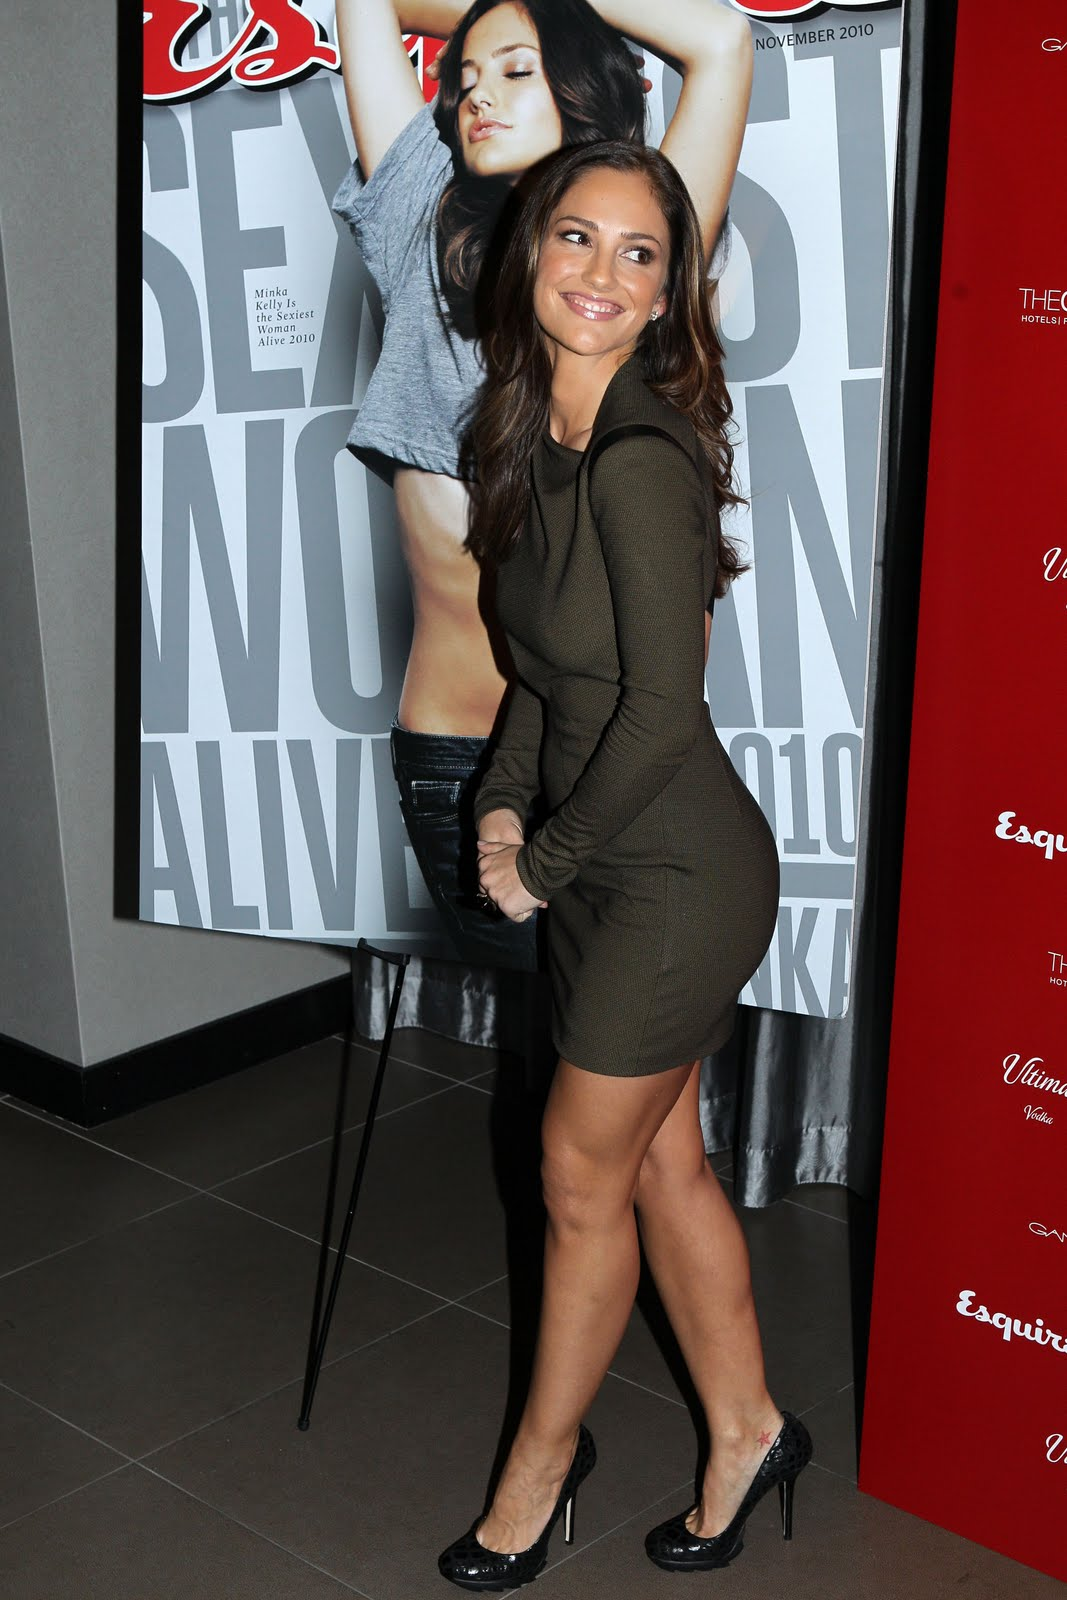 Cleavage Minka Kelly nudes (61 foto and video), Tits, Hot, Instagram, legs 2019